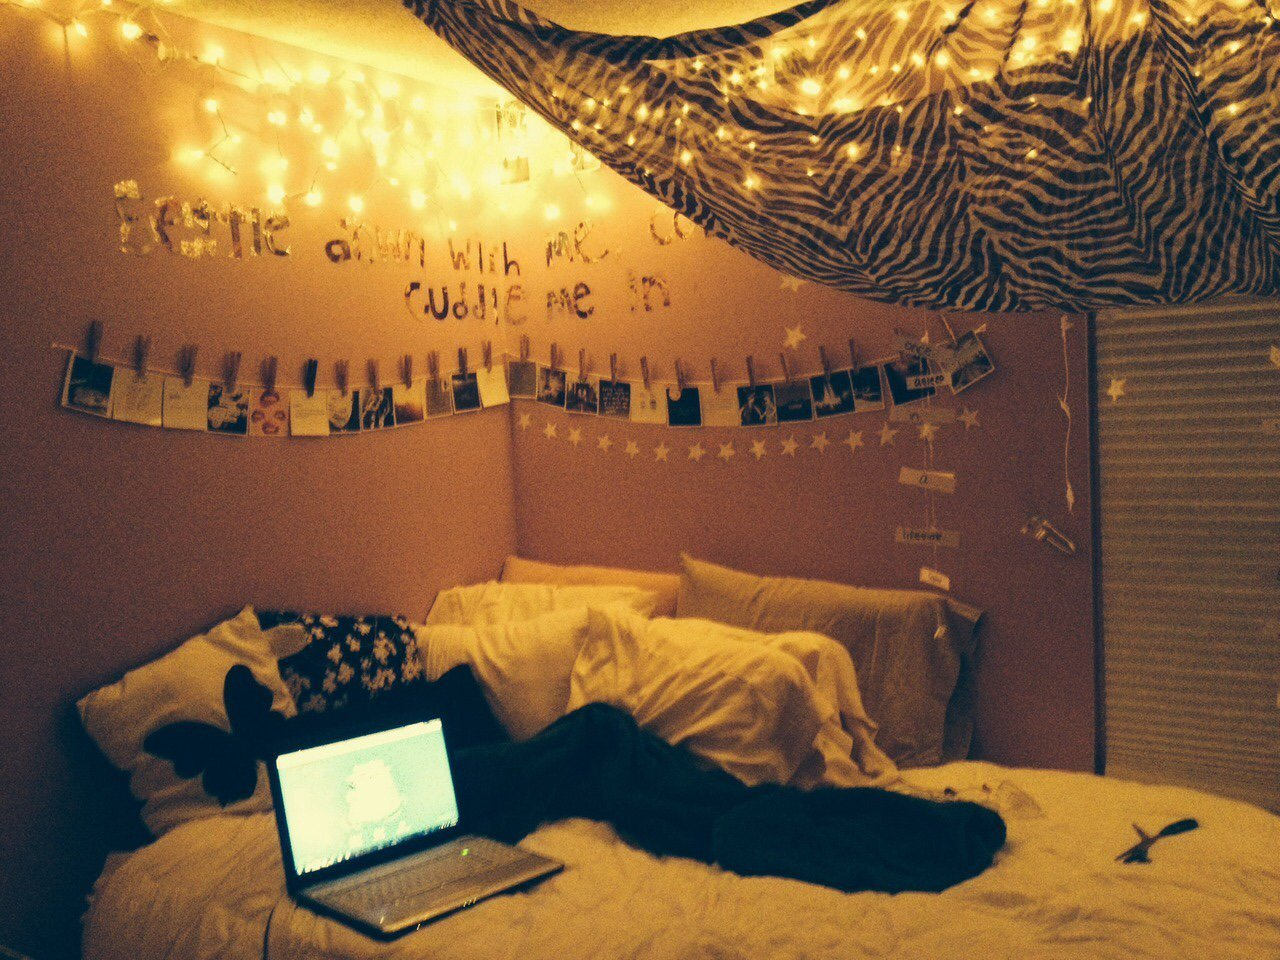 Fairy lights bedroom tumblr - Bedroom Fairy Lights Tumblr Source Tumblr